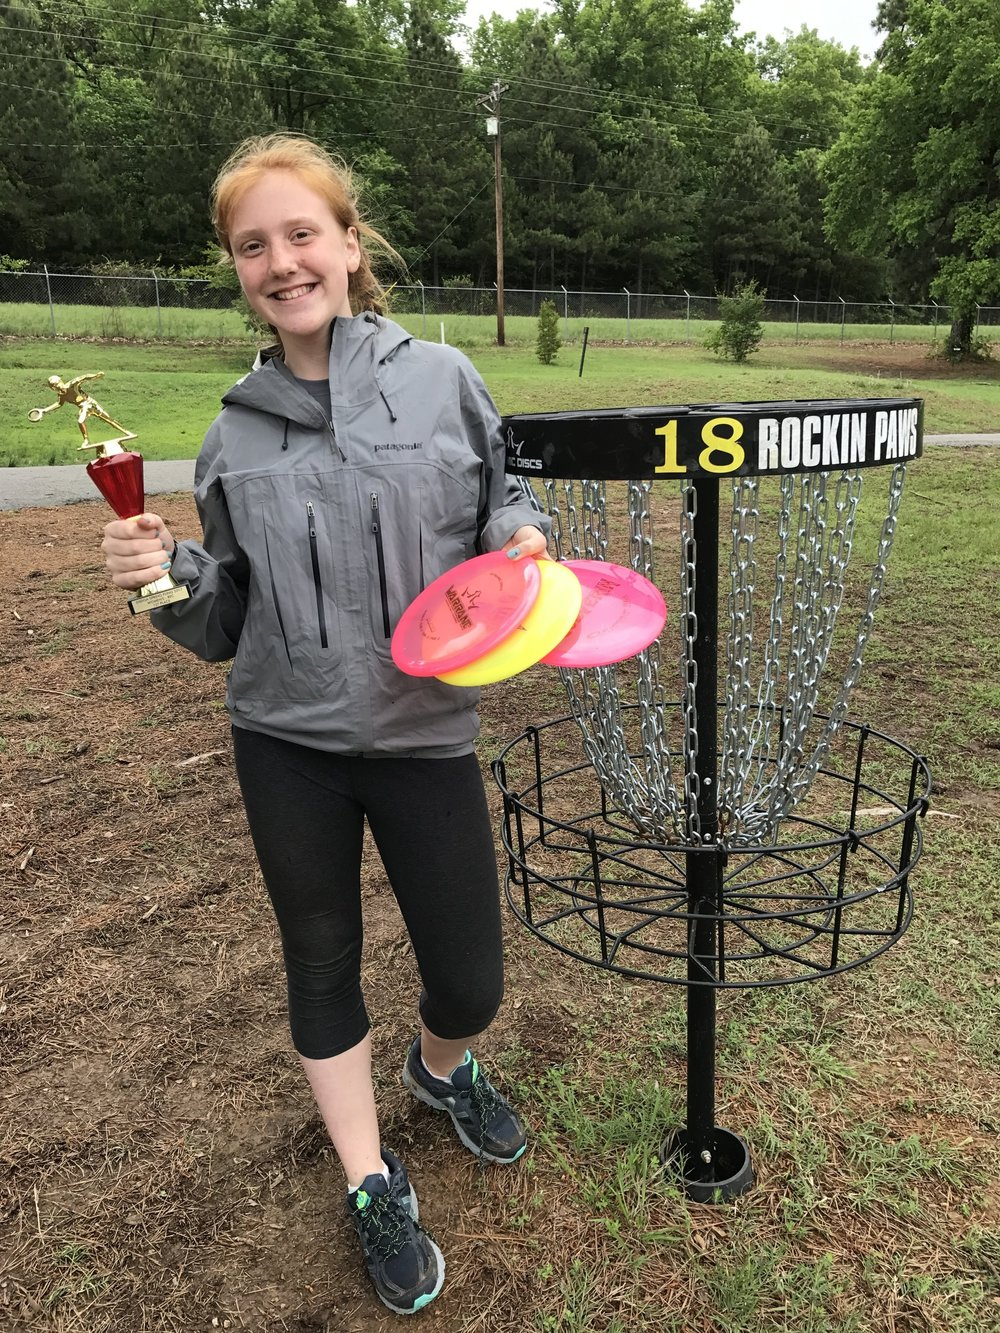 2017 Spring Fling - My first Win - Round 1 at Burns Blue, Round 2 at Pine Valley